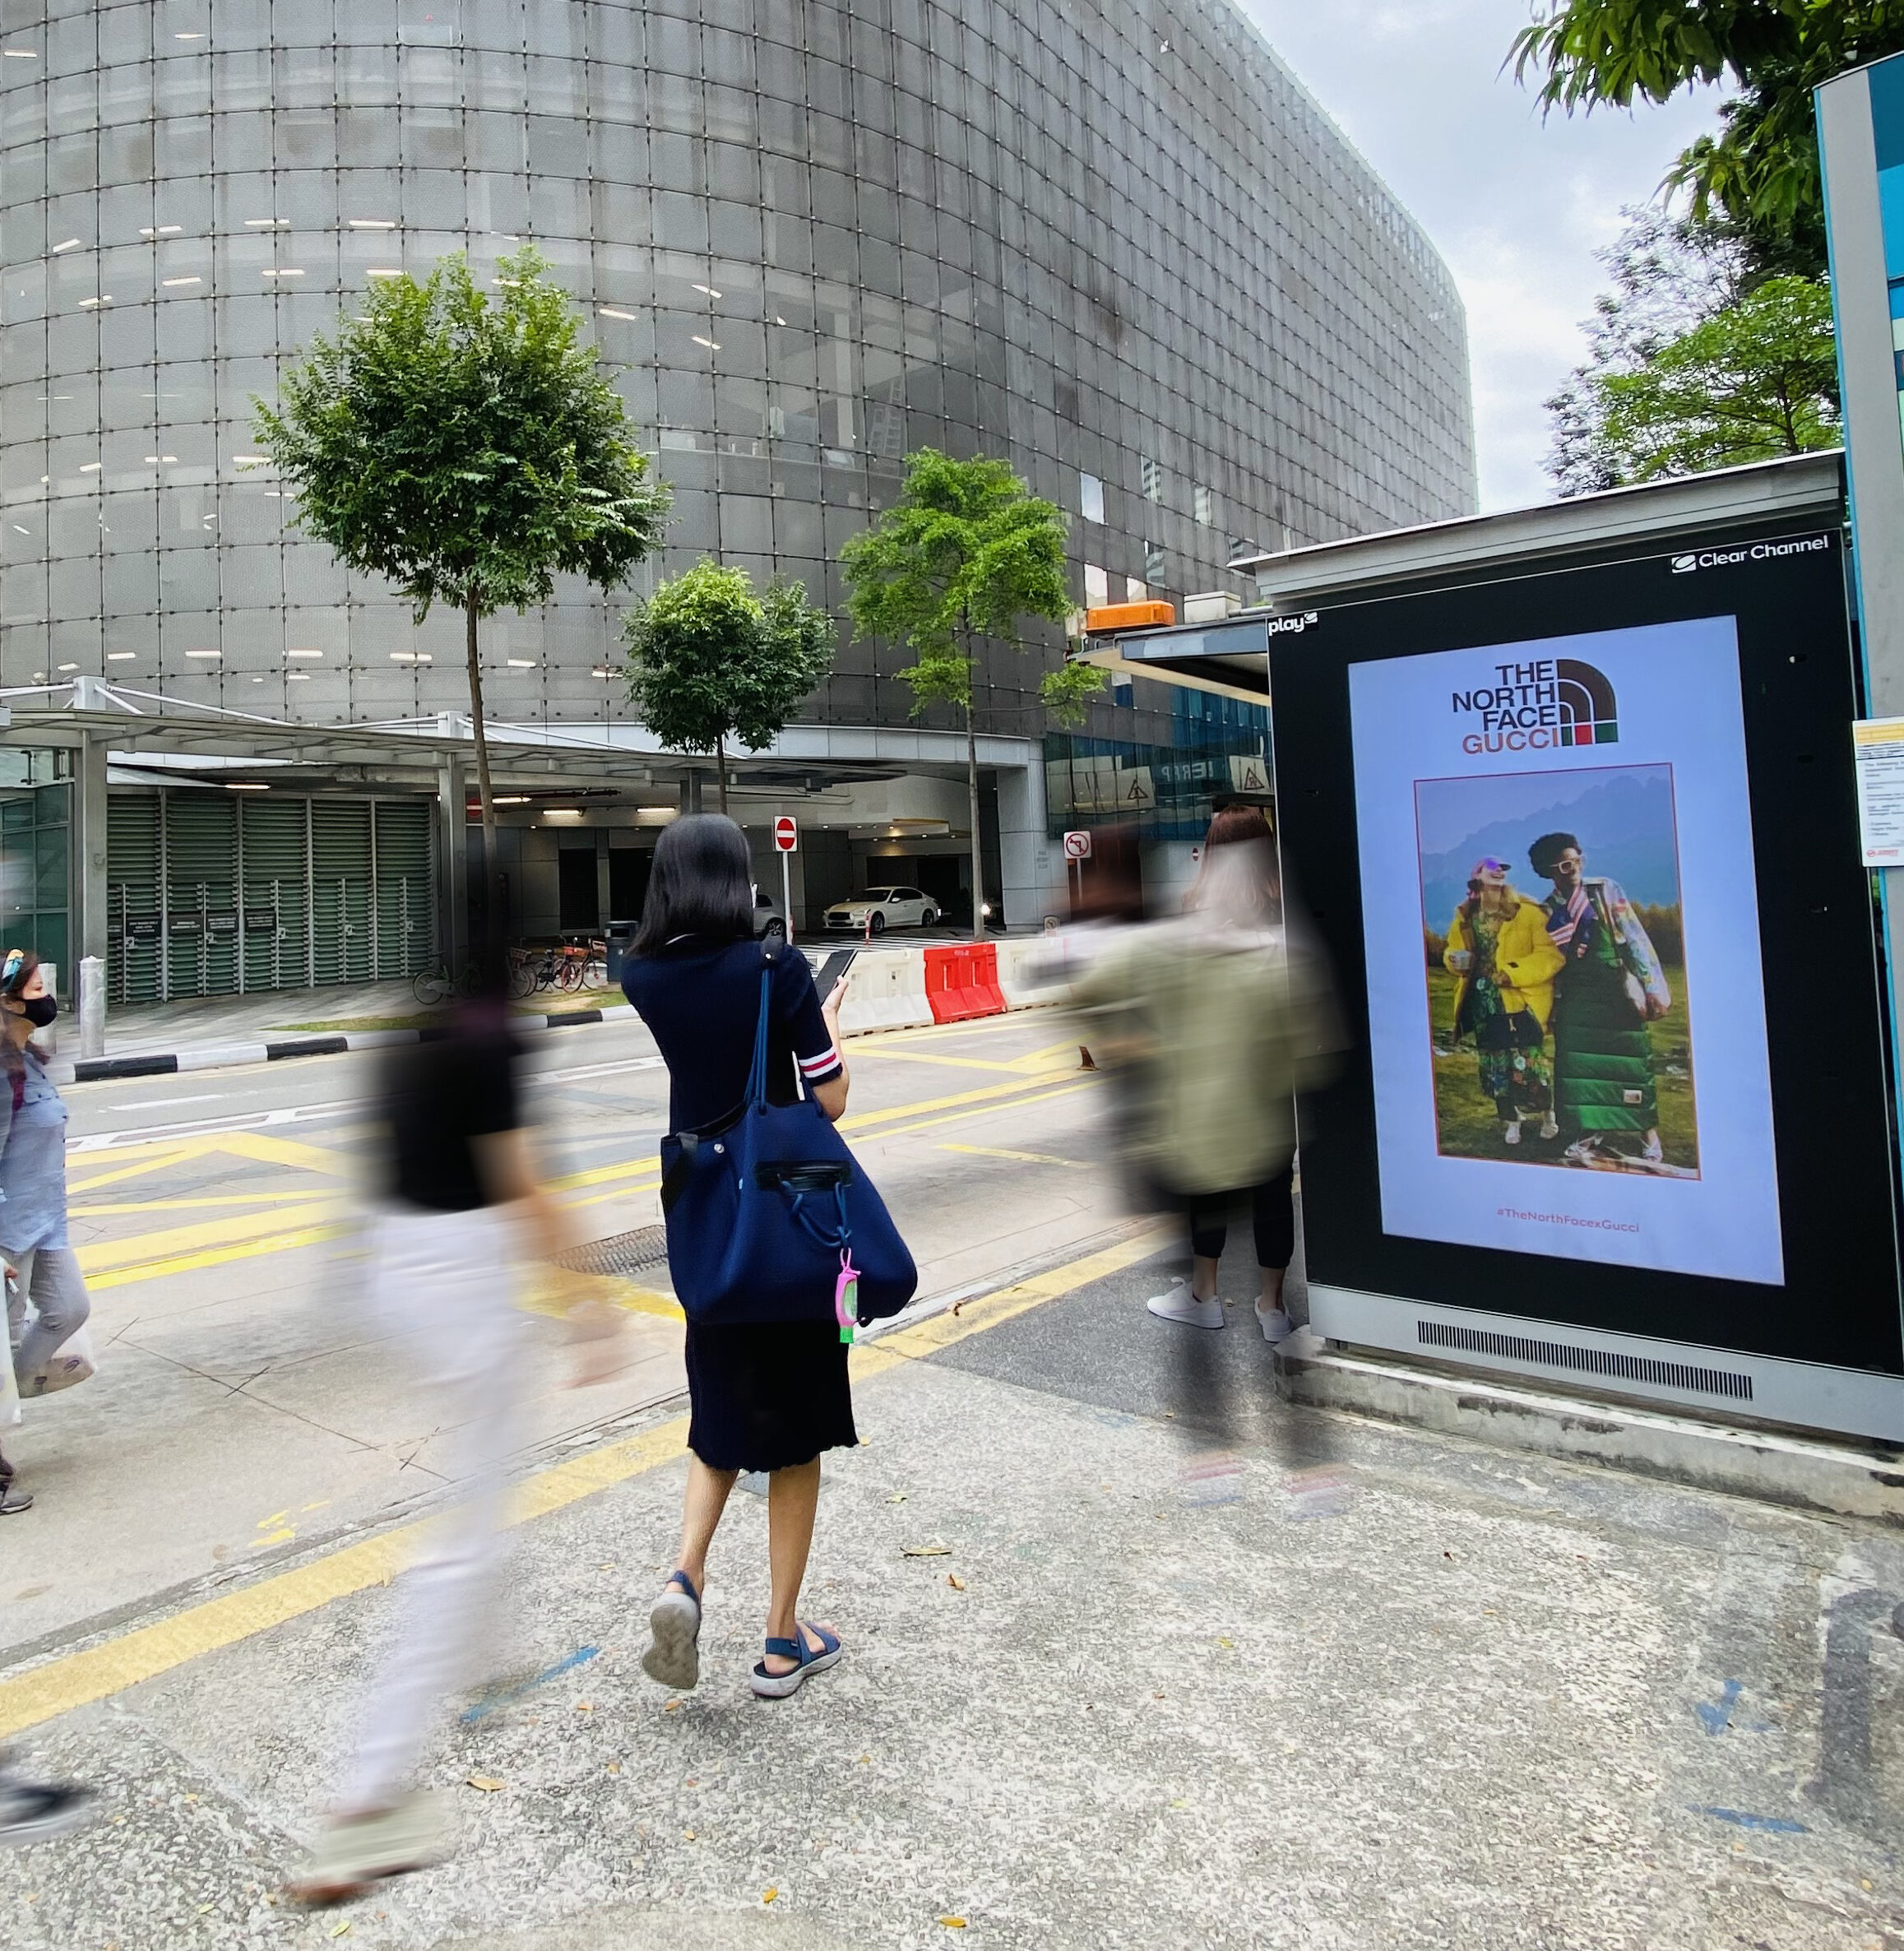 Clear Channel Singapore's promise of a frictionless digital ecosystem is now a reality.